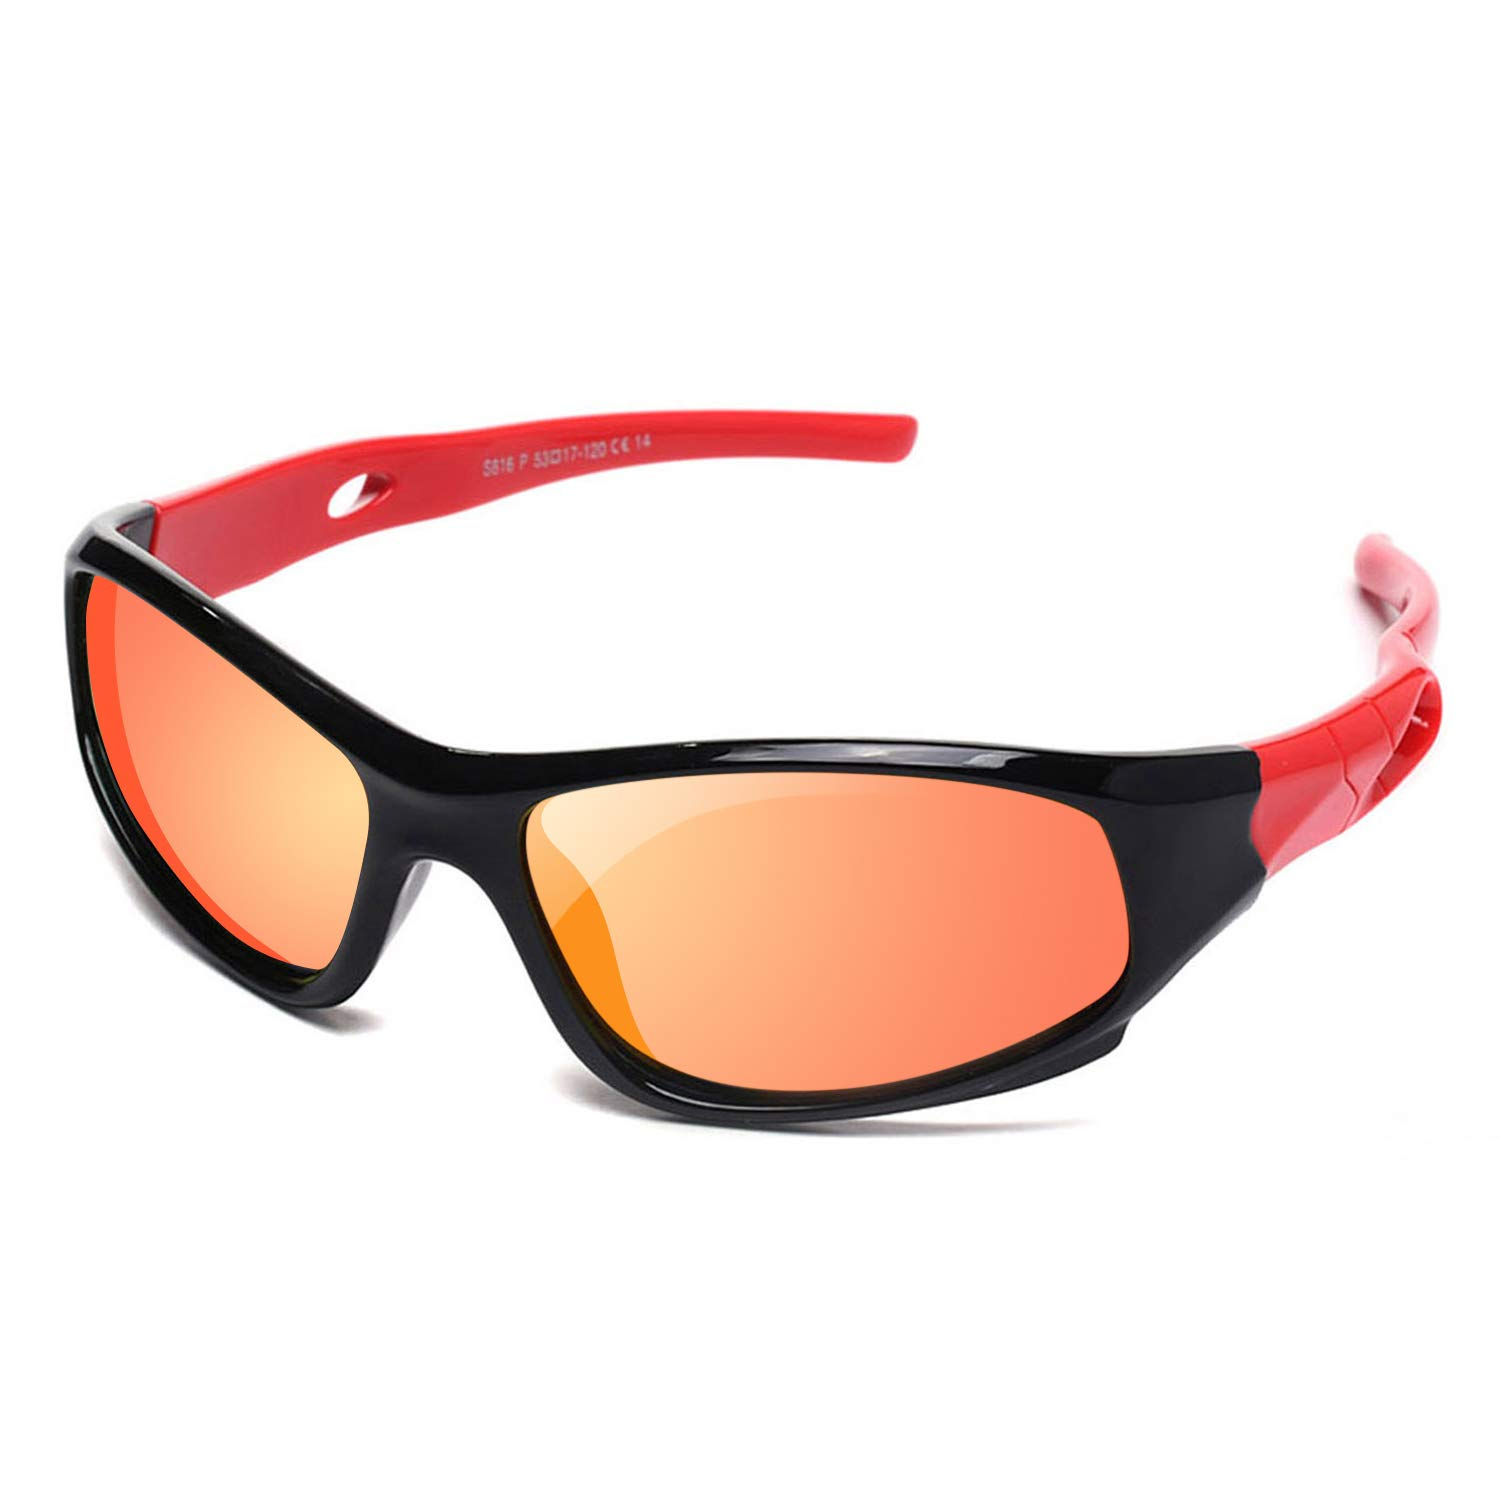 9d7ee9eb36f Amazon.com  YAMAZI Children Sports Polarized Sunglasses For Kids Boys Girls  Rubber Flexible Frame Sunglasses UV Protection (Black